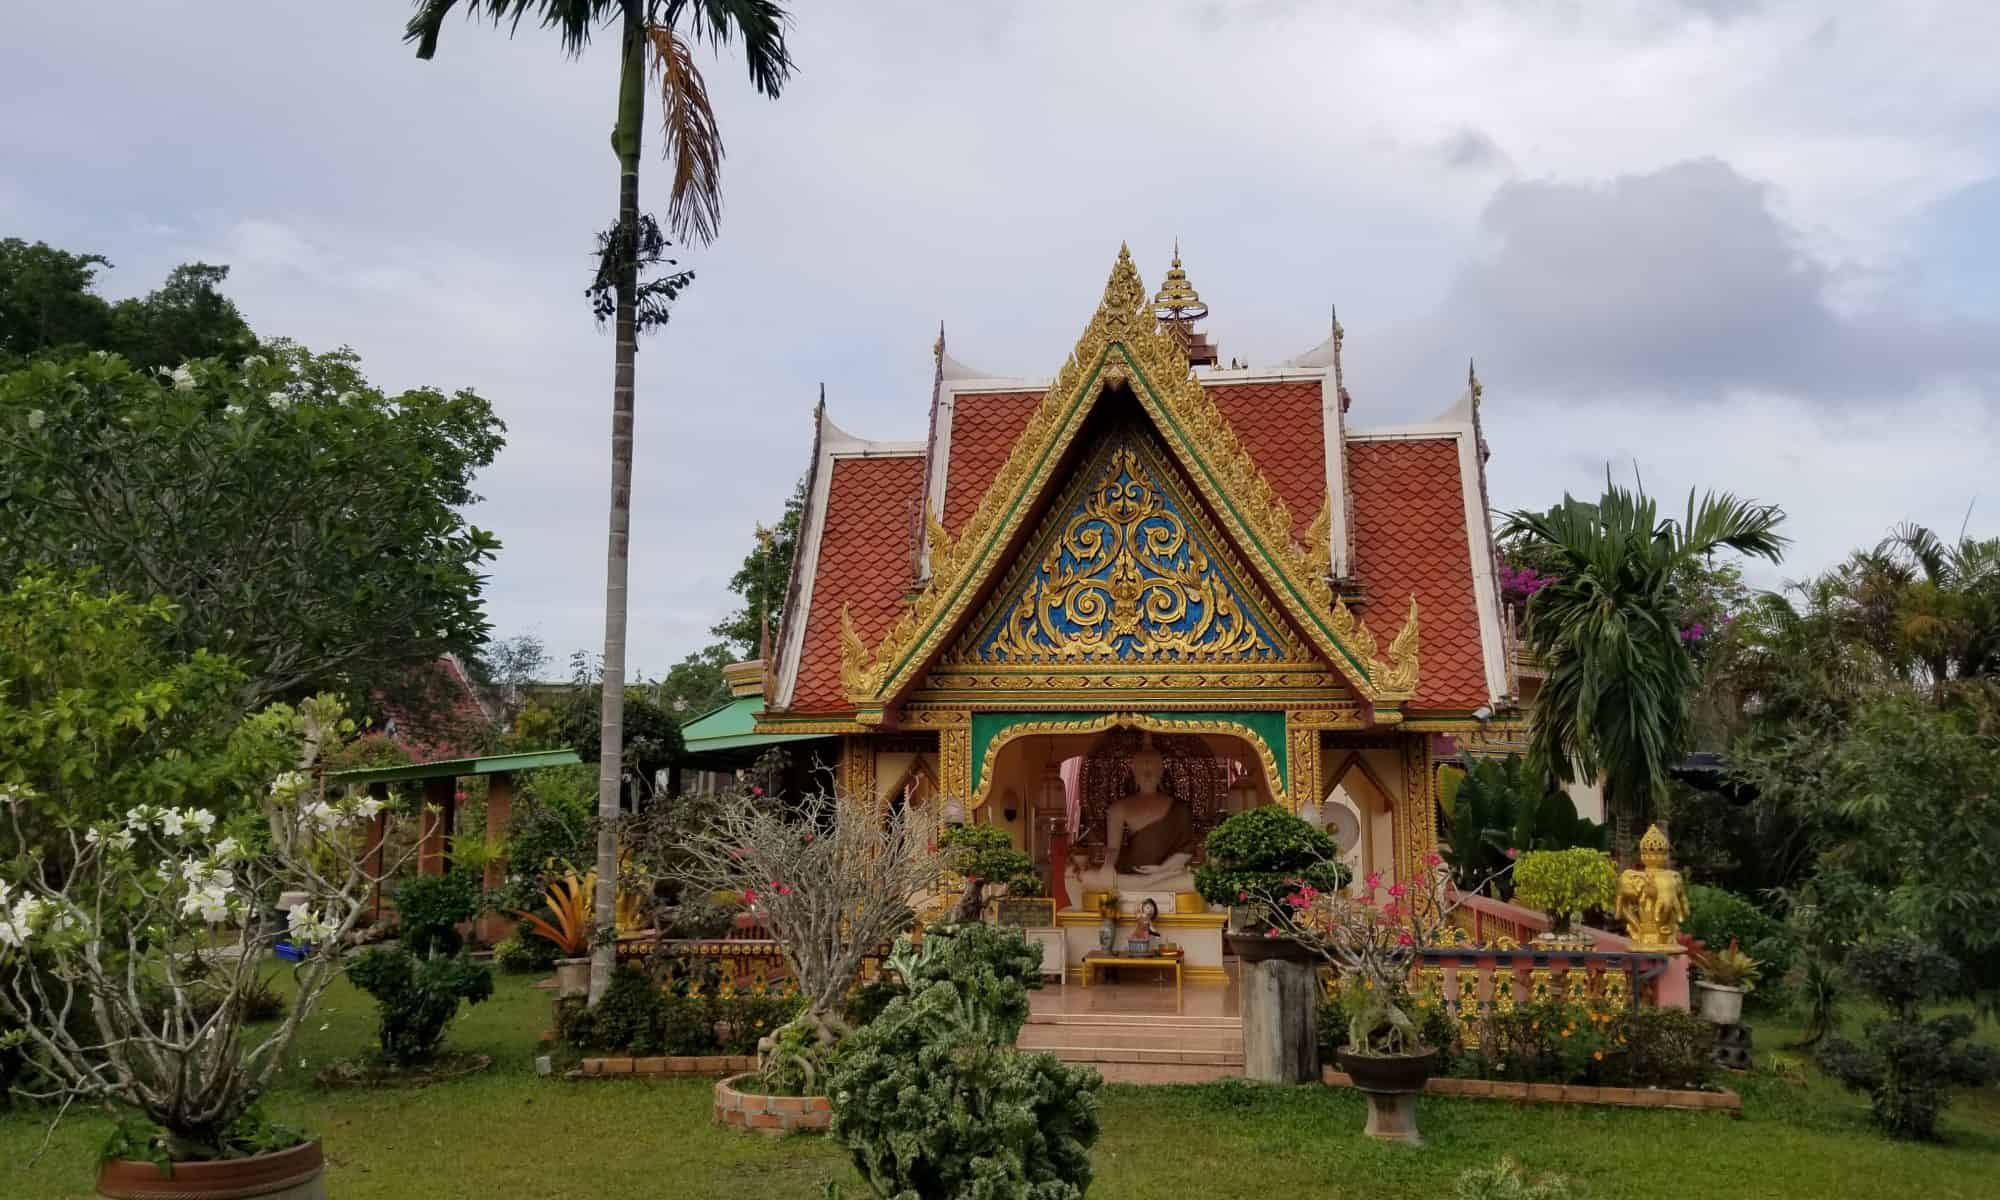 image-of-Naiyang-buddhist-temple-in-phuket-thailand